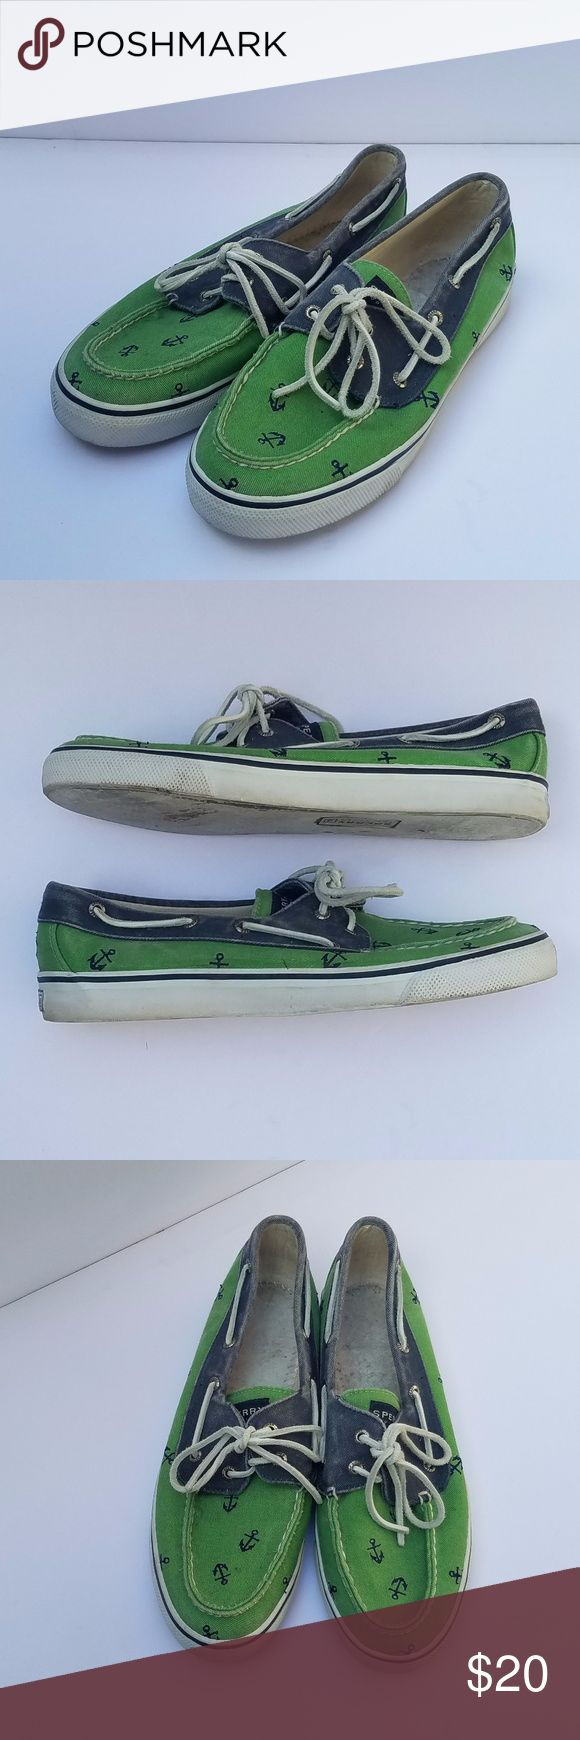 Sperry Top-Sider Canvas Boat Shoes Sperry Top-Sider Canvas Boat Shoes, Green and Navy Canvas boat shoes with white leather laces and navy embroidered anchors all-over.  Great condition, they are factory distressed, have only been worn a handful of times.  Size  8.5  363-F Sperry Shoes Flats & Loafers